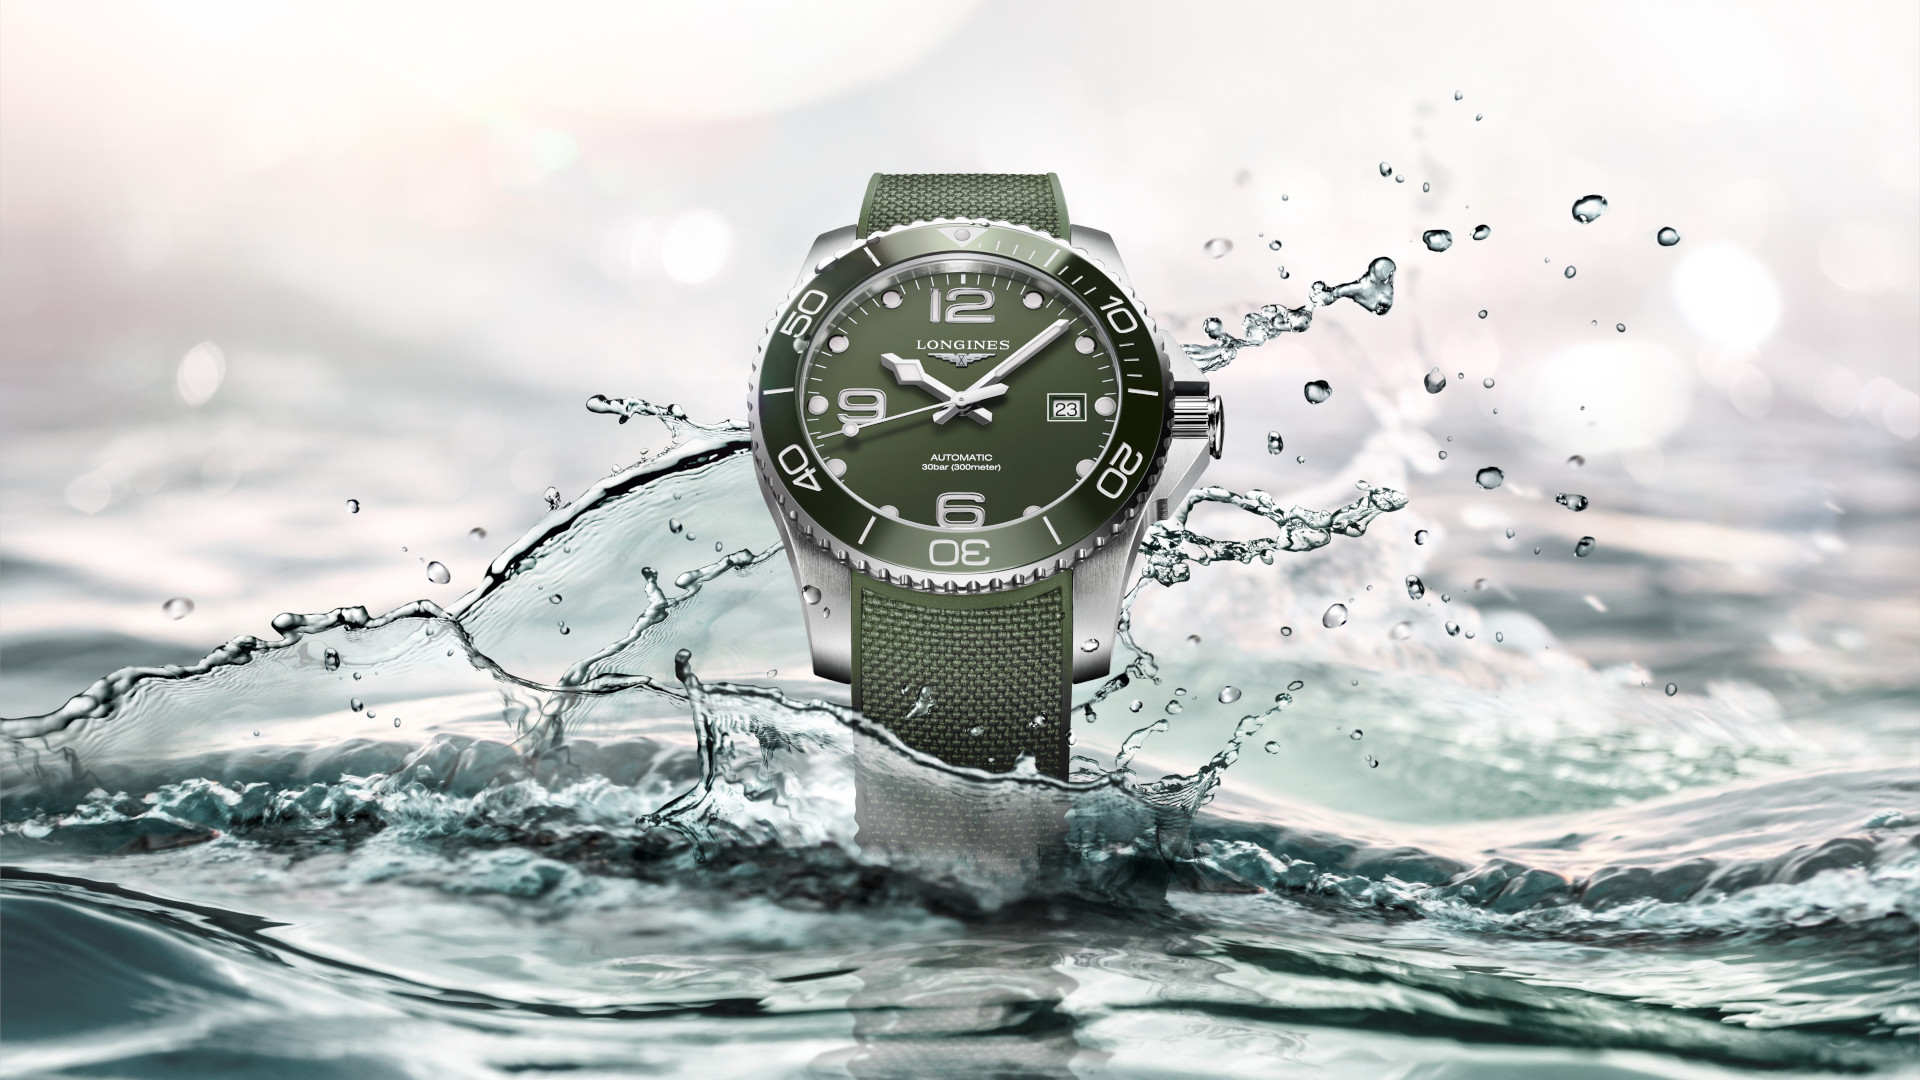 Longines goes green with their latest HydroConquest dive watch